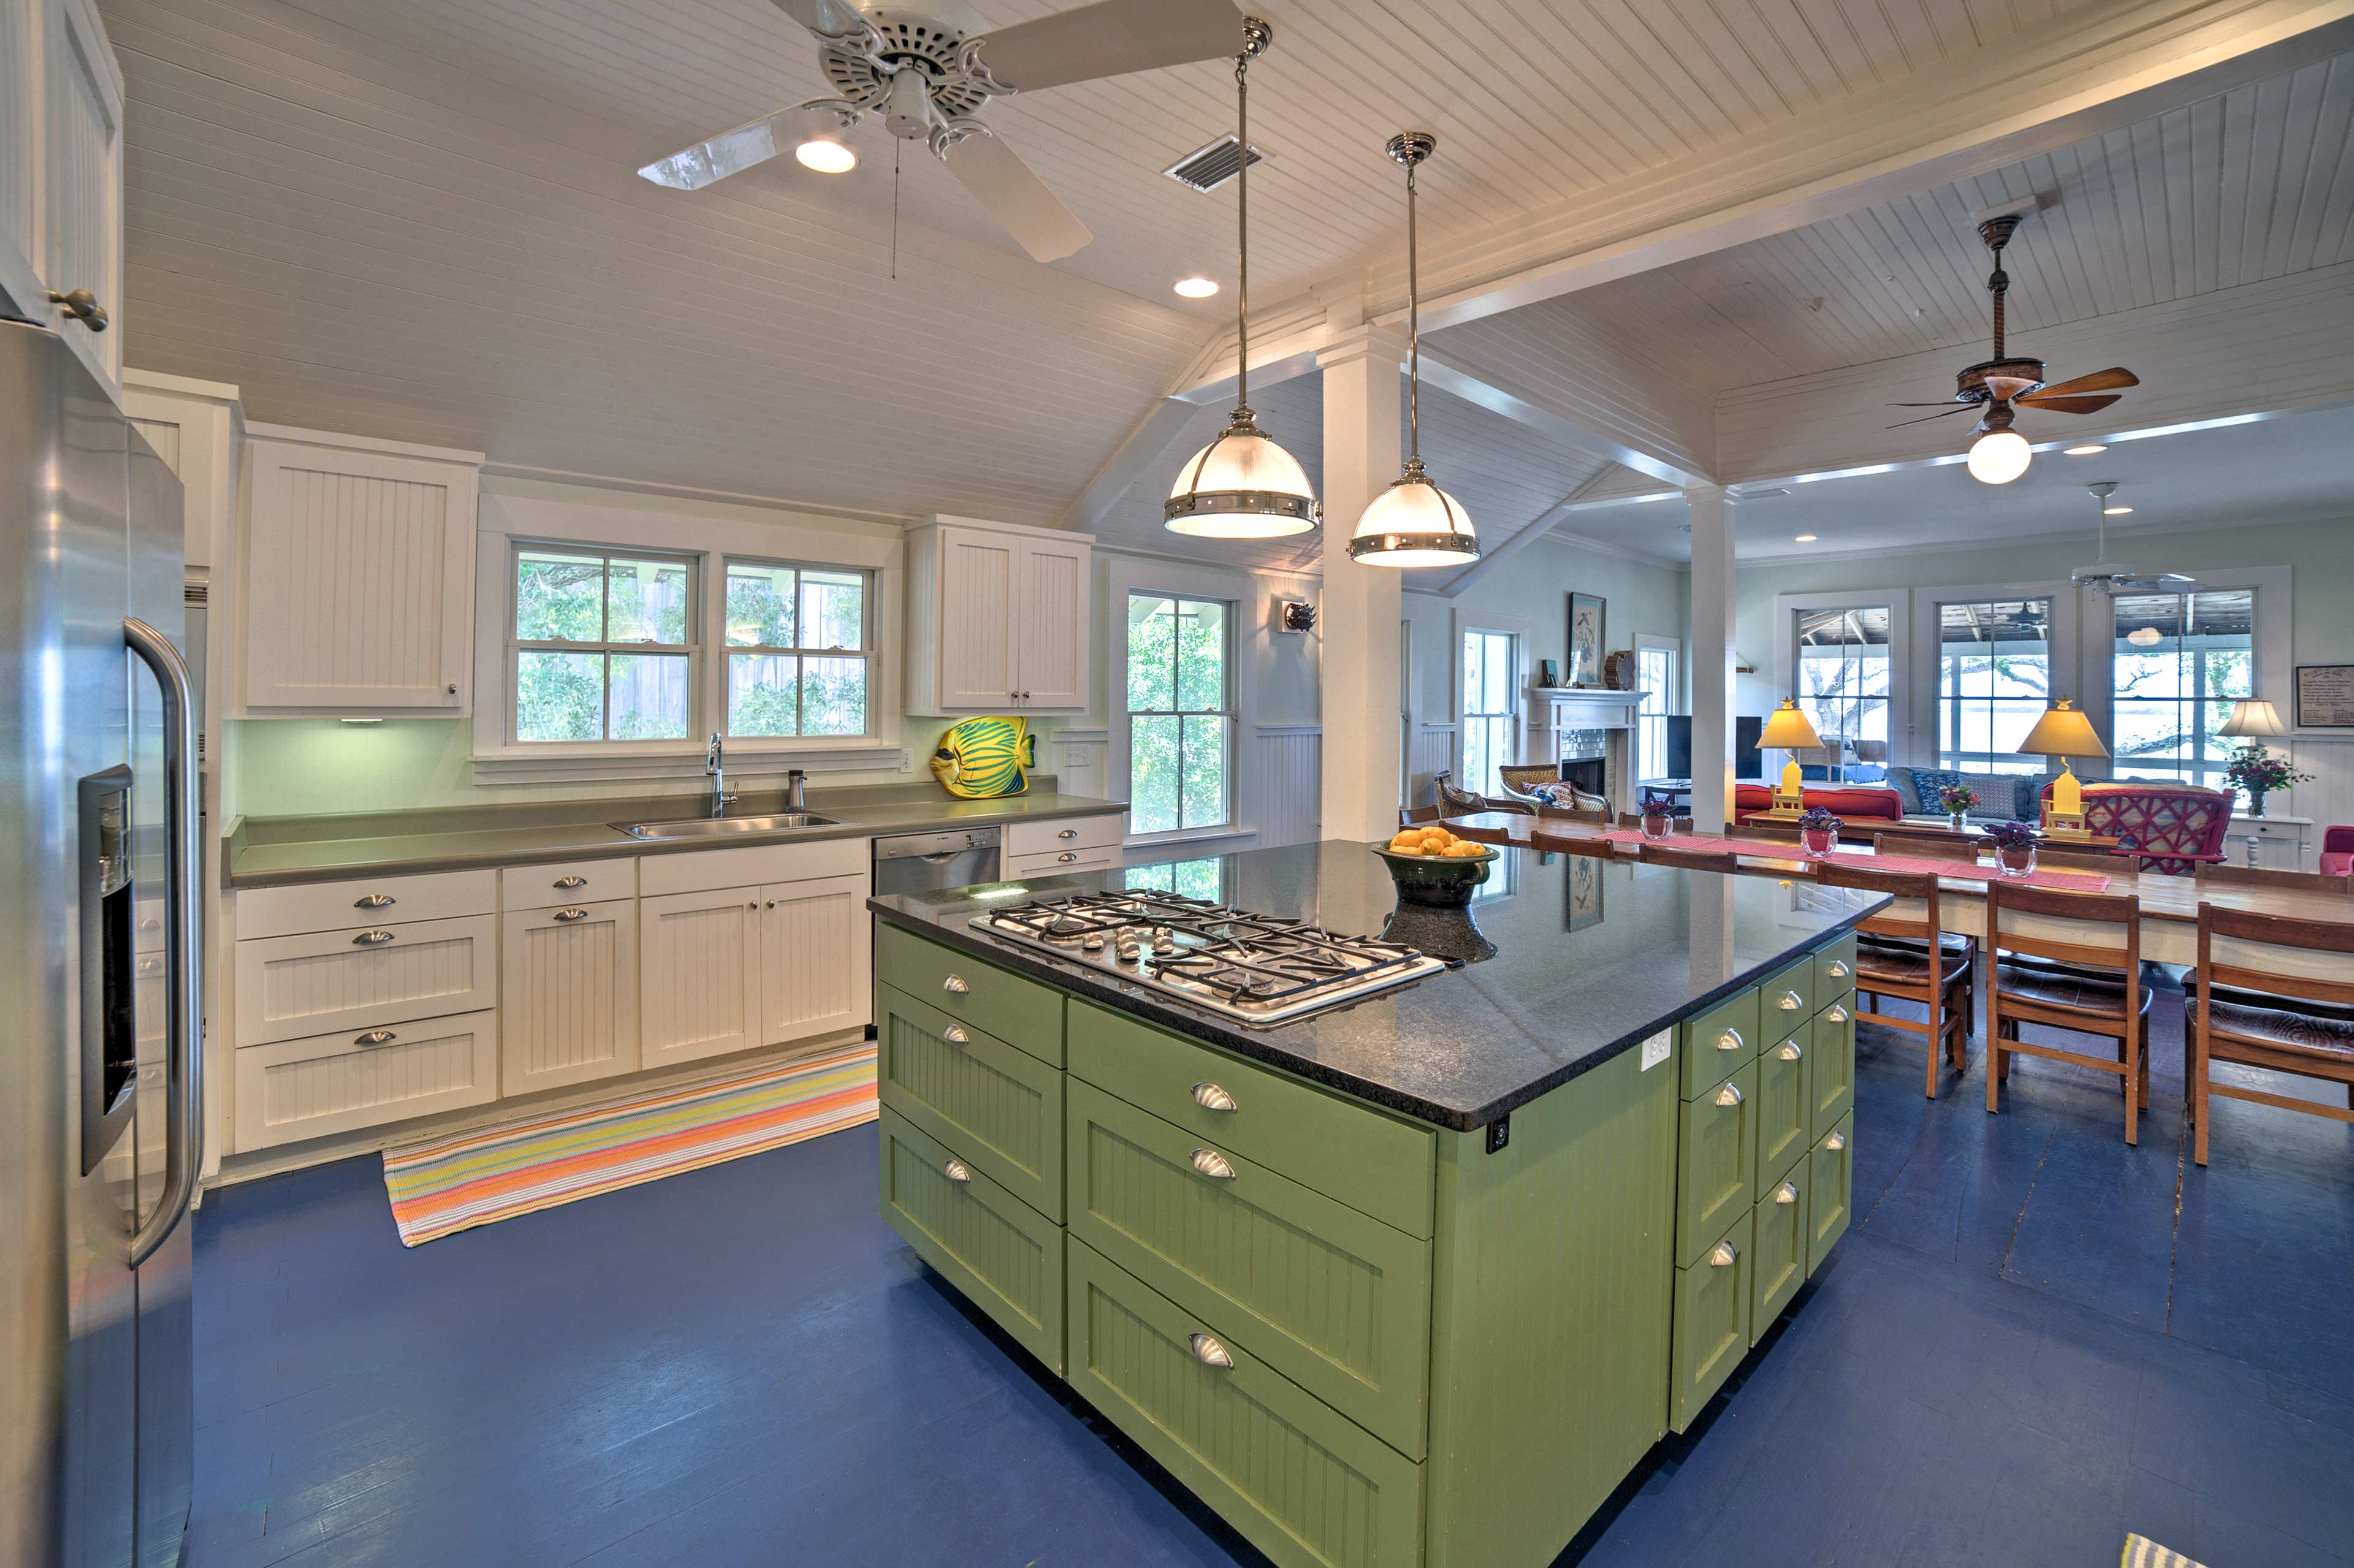 The kitchen space includes stainless steel appliances and an island counter.